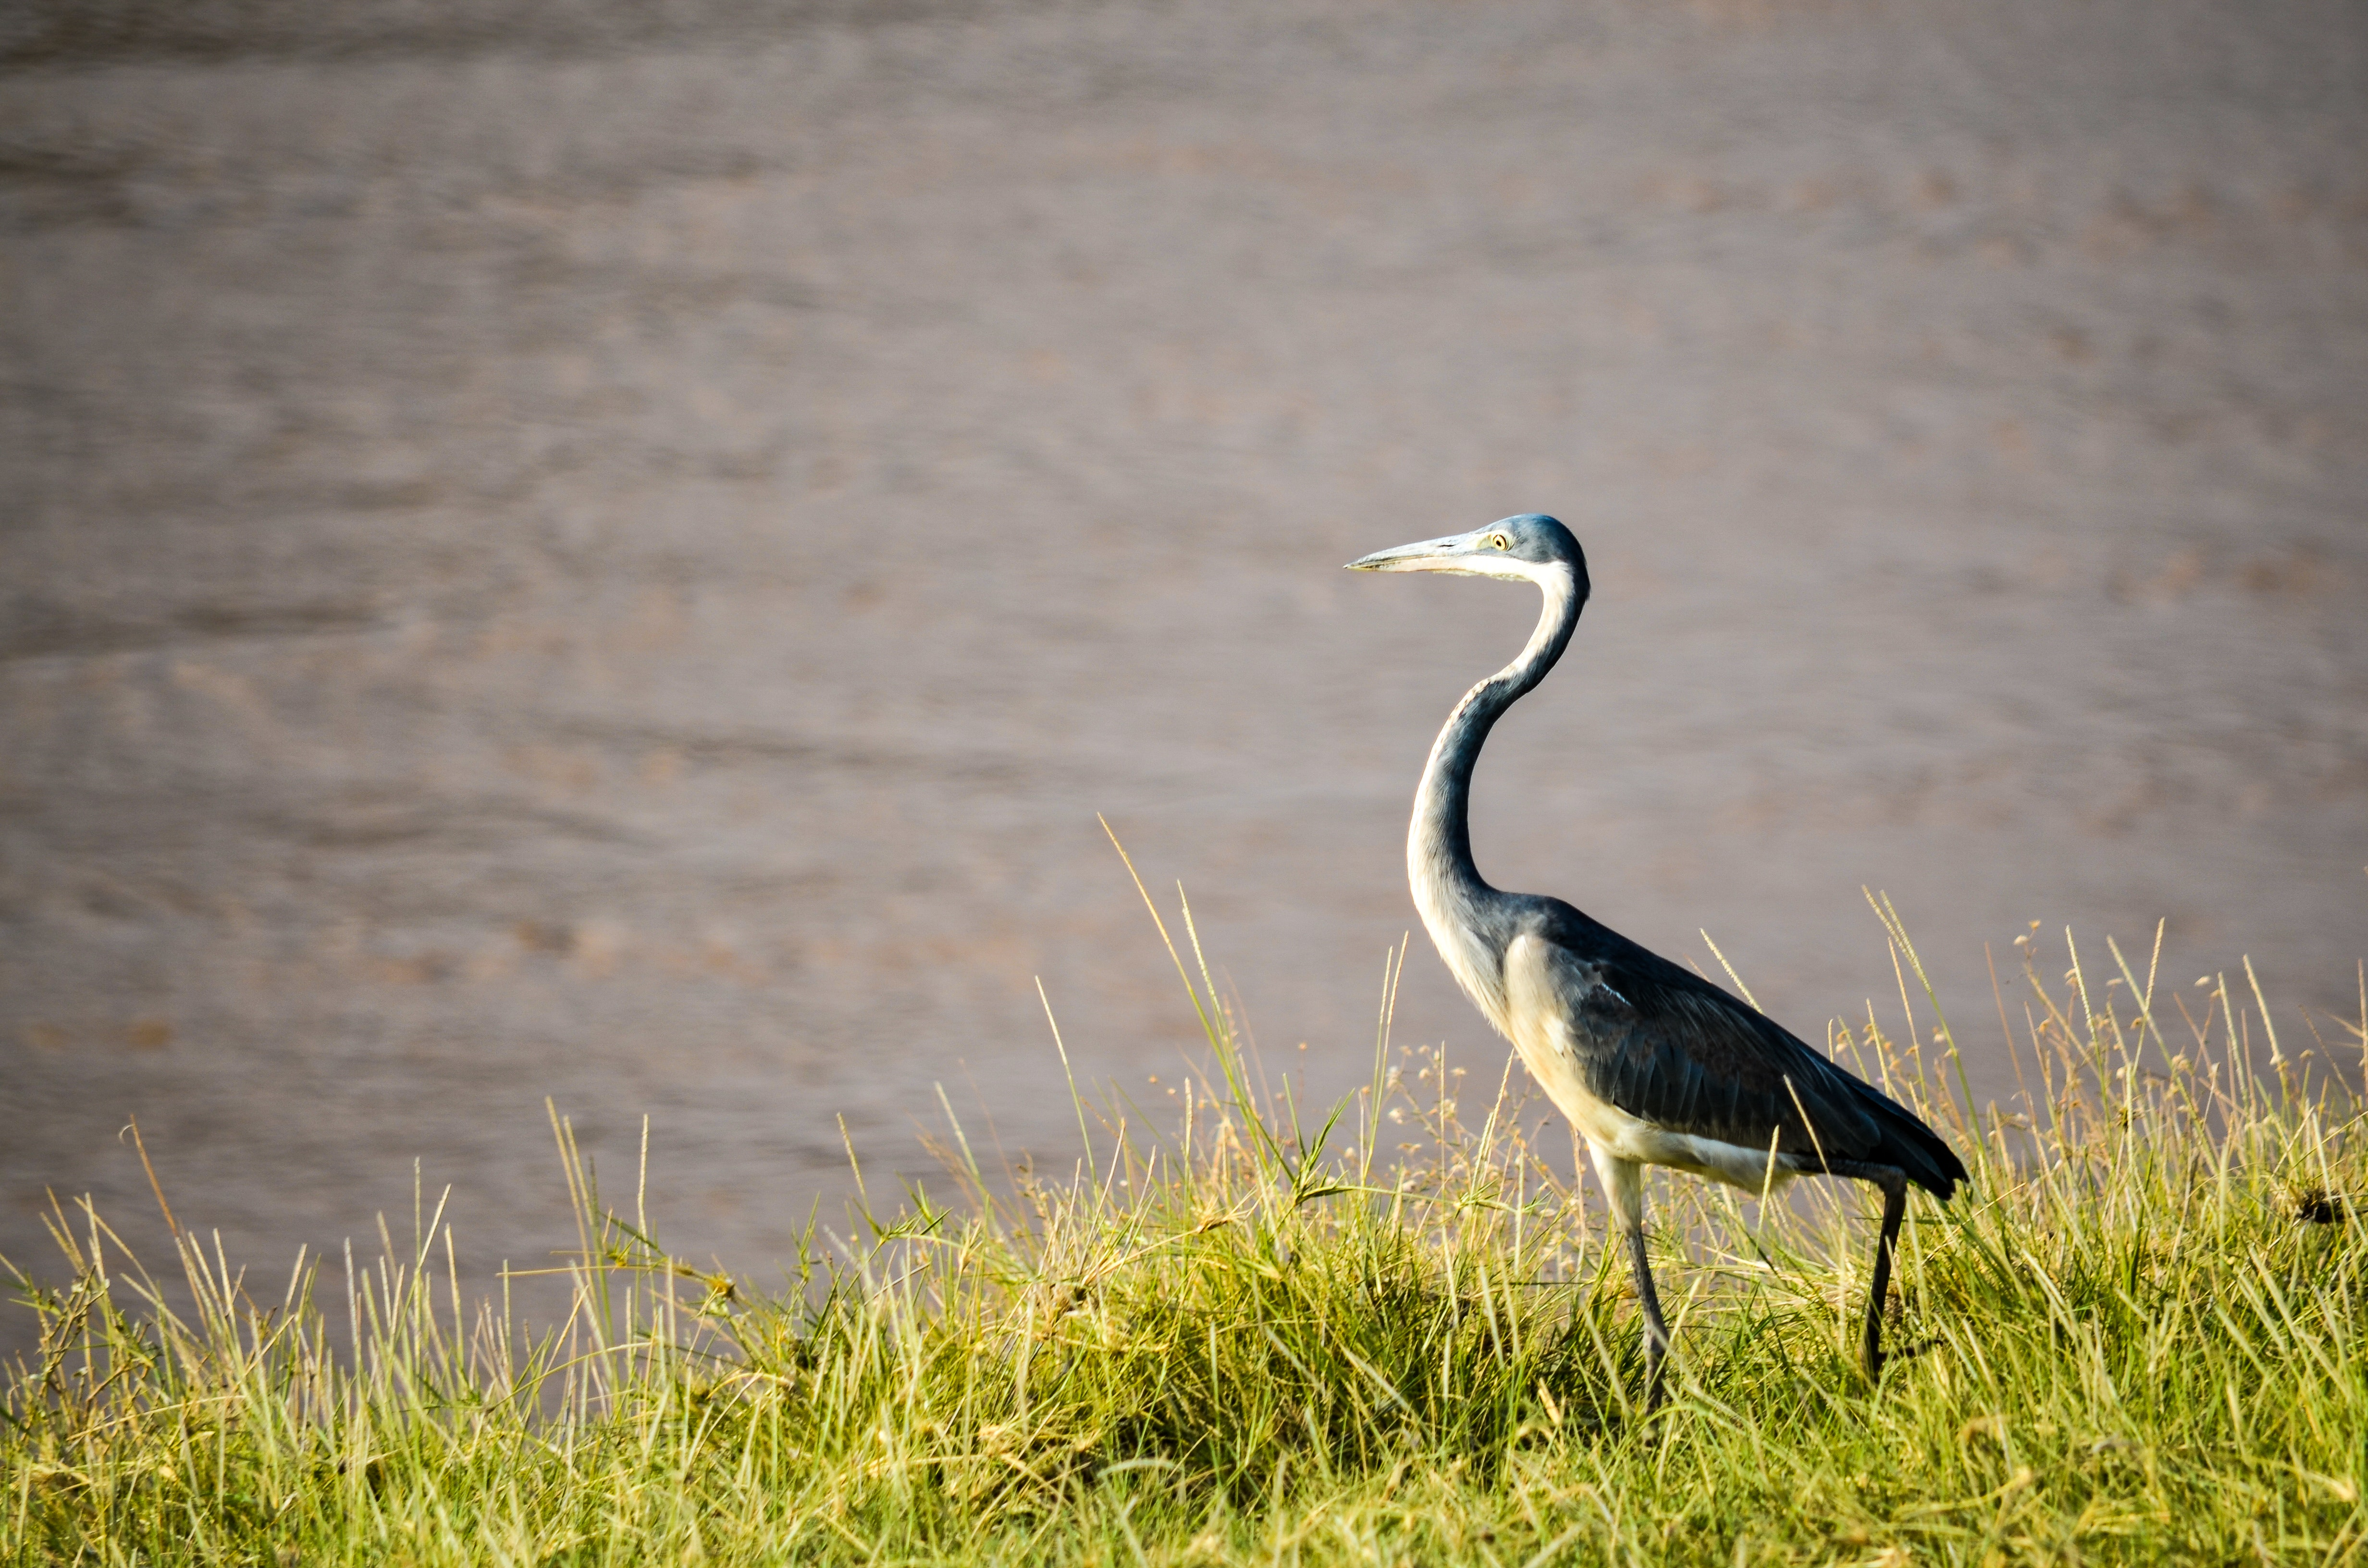 Black and white bird standing on green grass beside body of water at daytime photo